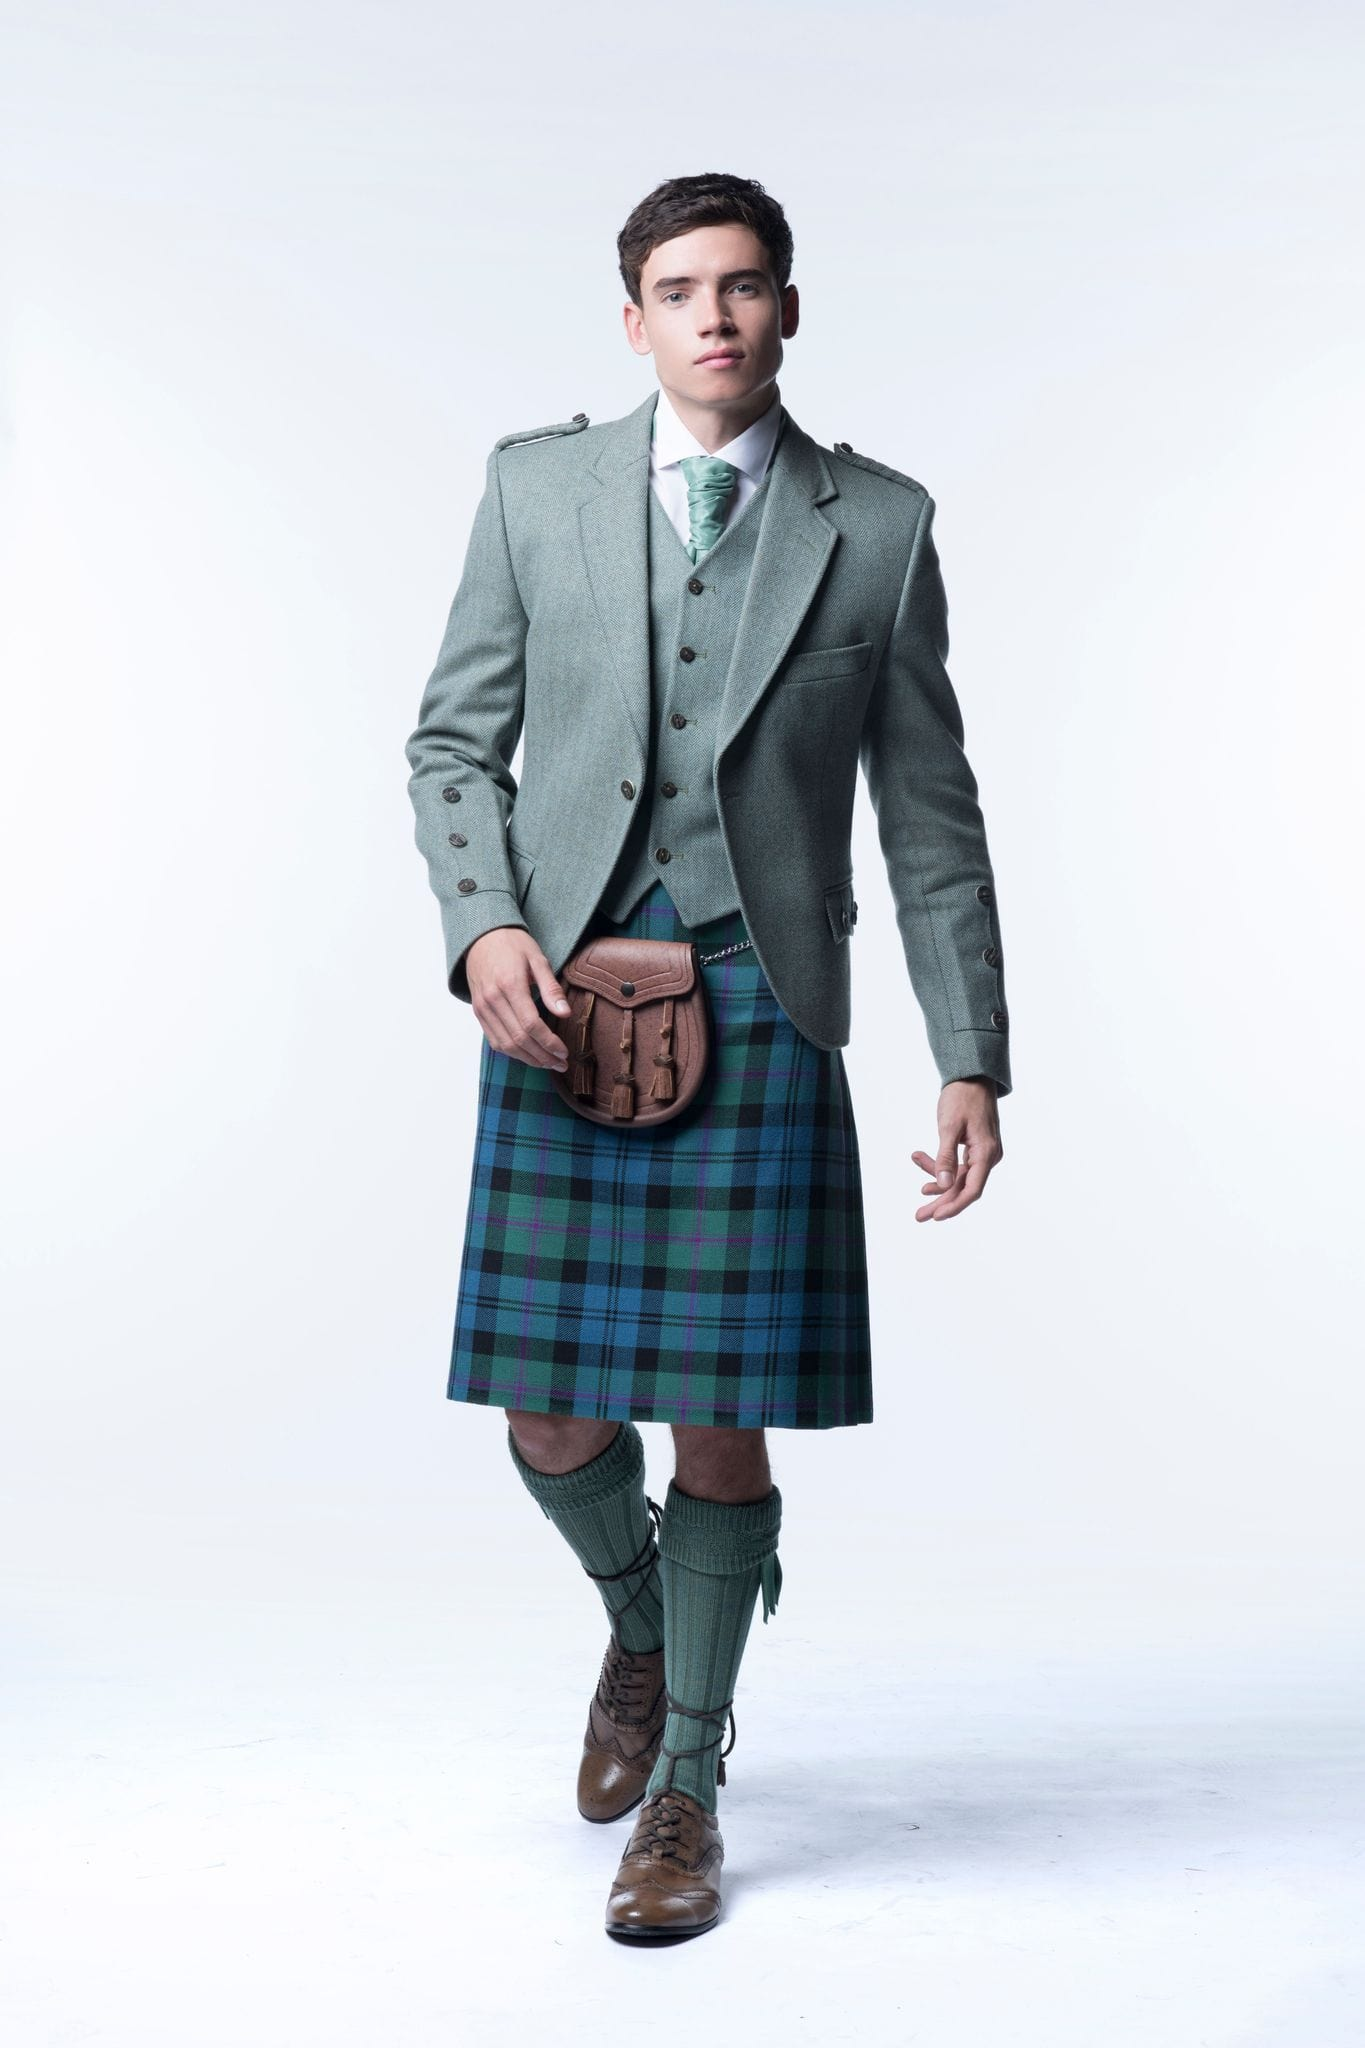 macgregorandmacduff Kilt Outfit Lovat Green Tweed Package - Choose Your Tartan